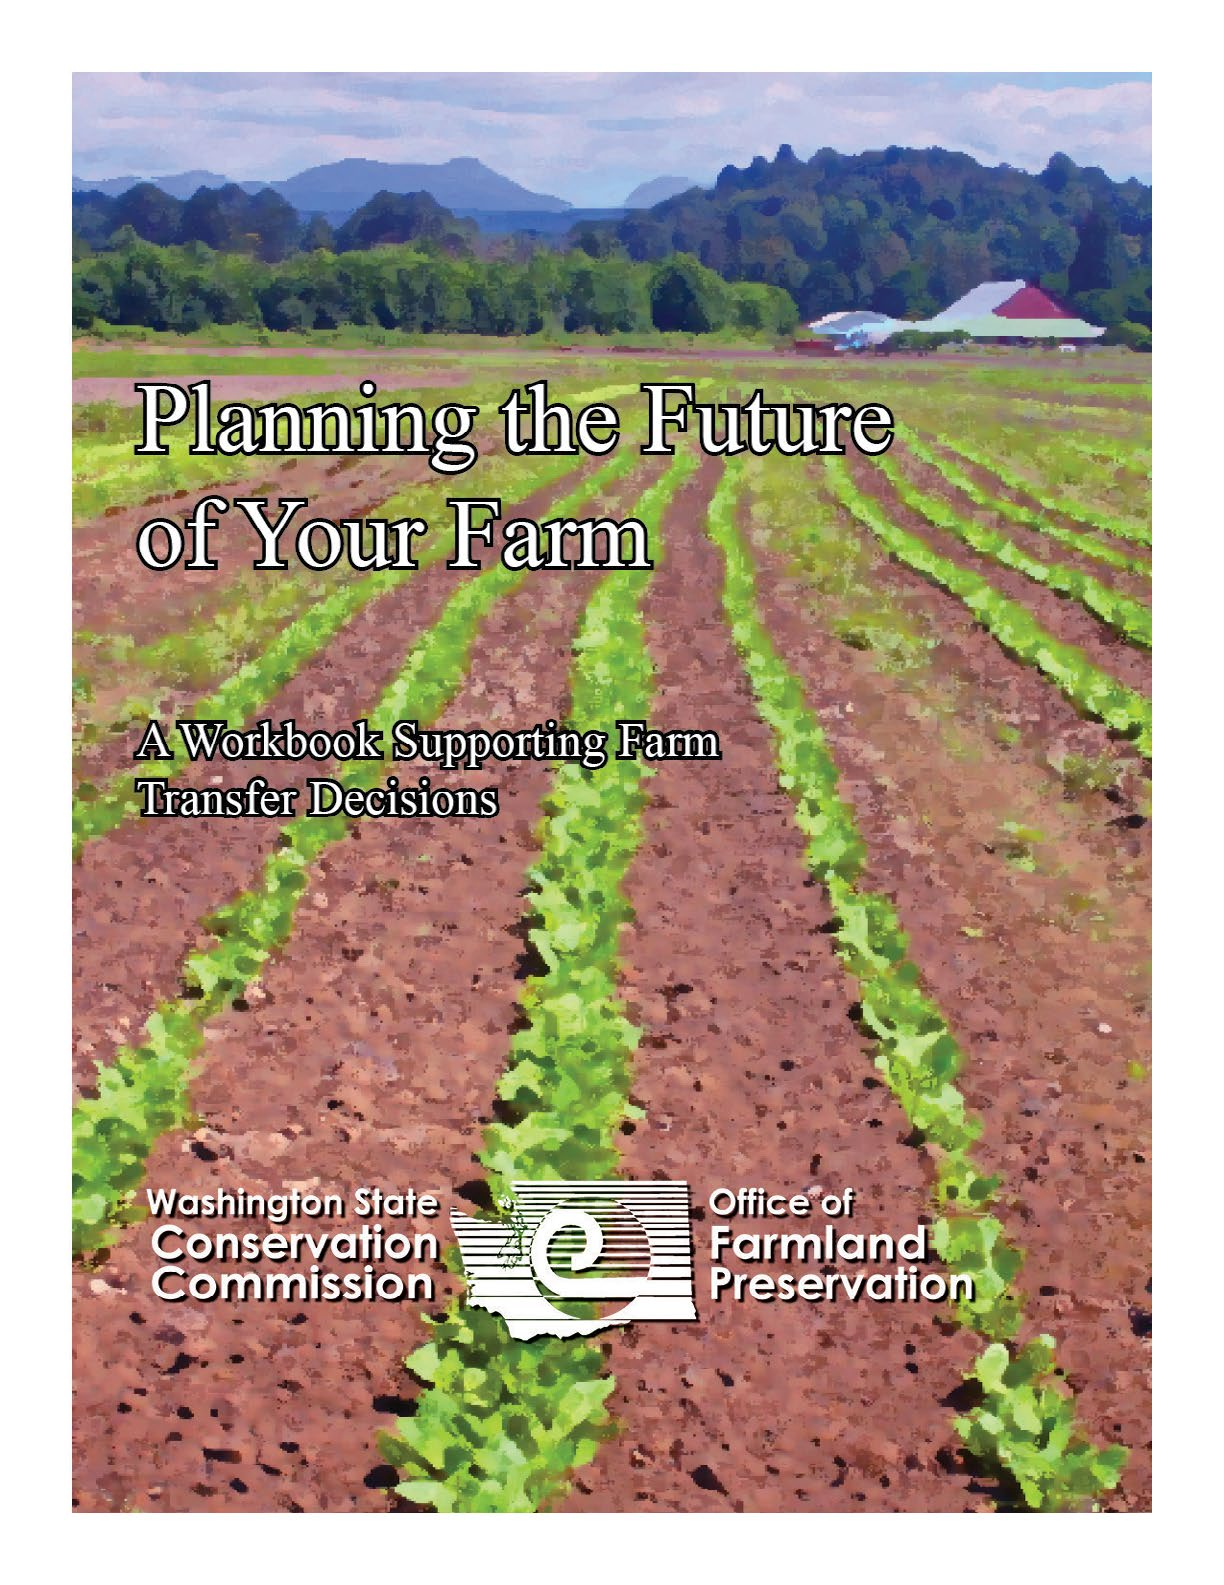 Planning for the Future of Your Farm Workbook